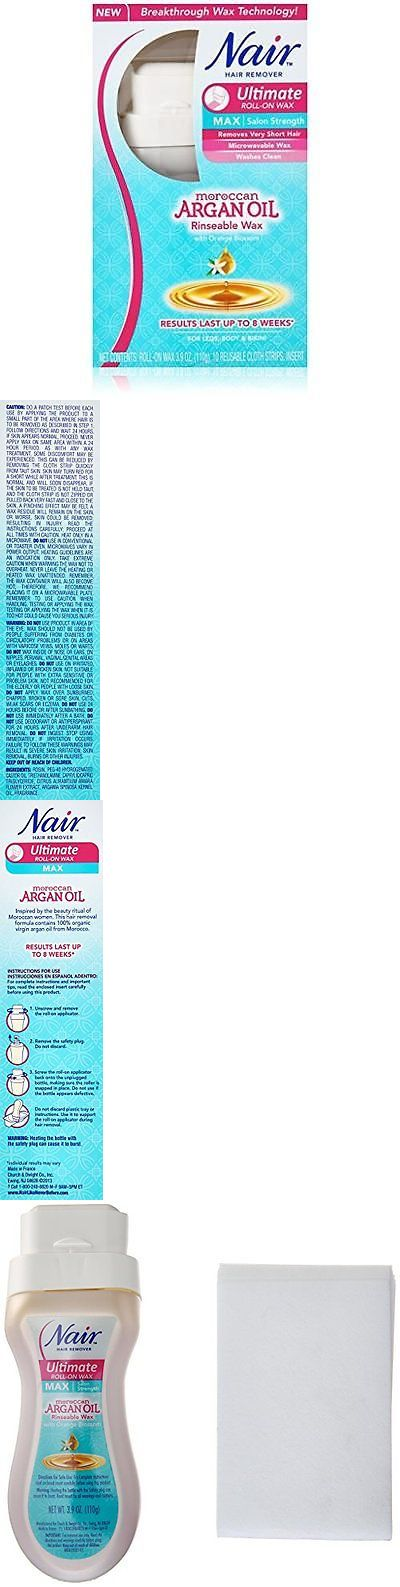 Waxing Supplies: Nair Ultimate Moroccan Argan Oil With Orange Blossom Rinseable Wax Kit New -> BUY IT NOW ONLY: $44.66 on eBay!